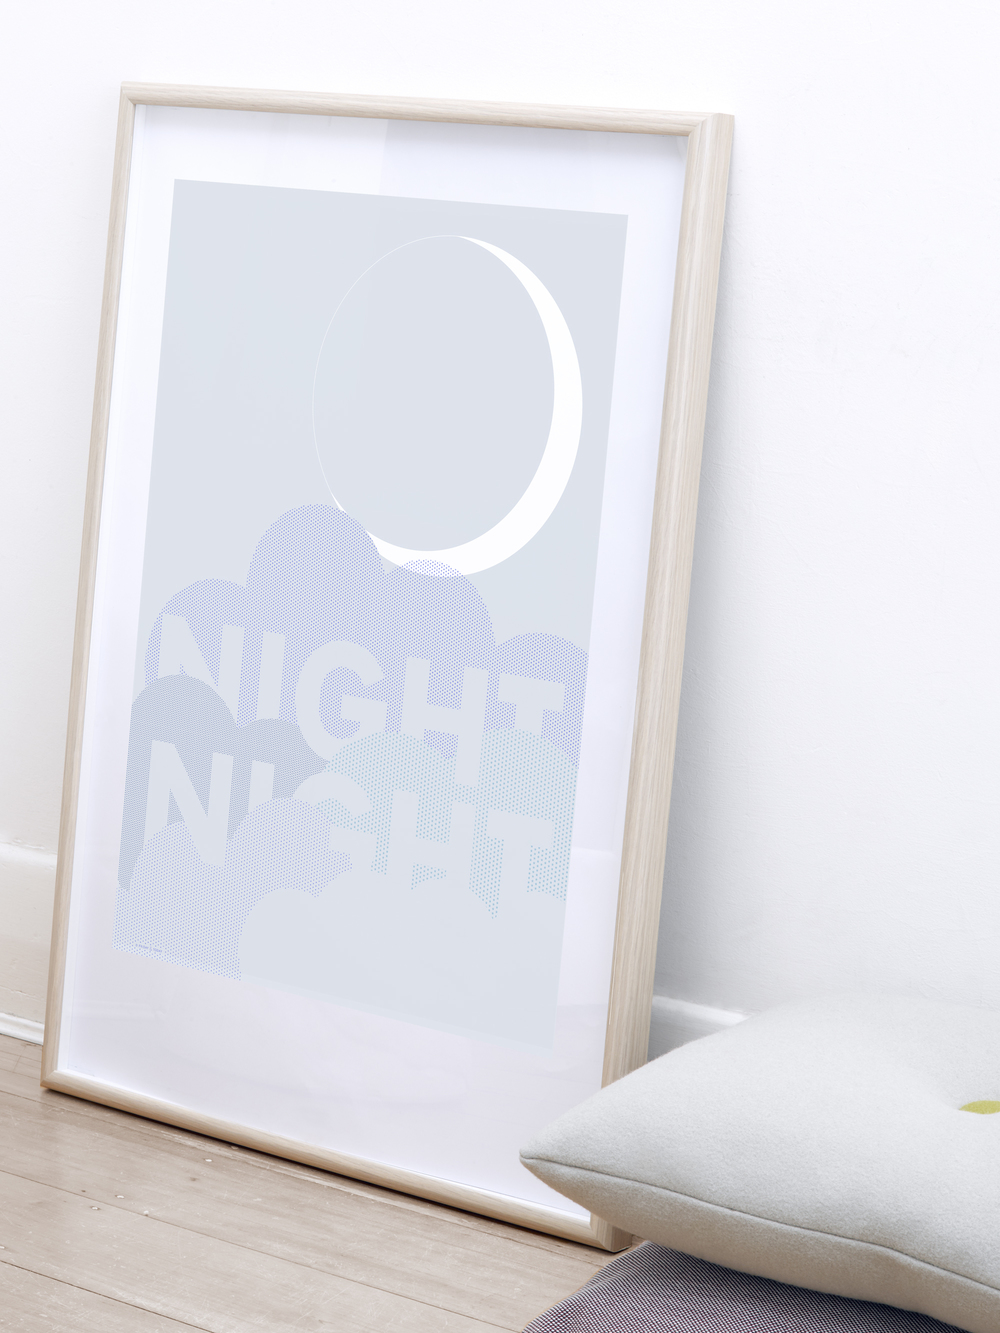 FRIDAY & TODAY • Night Night Poster • Styled by @friday_andtoday • Available at www.fridayandtoday.com